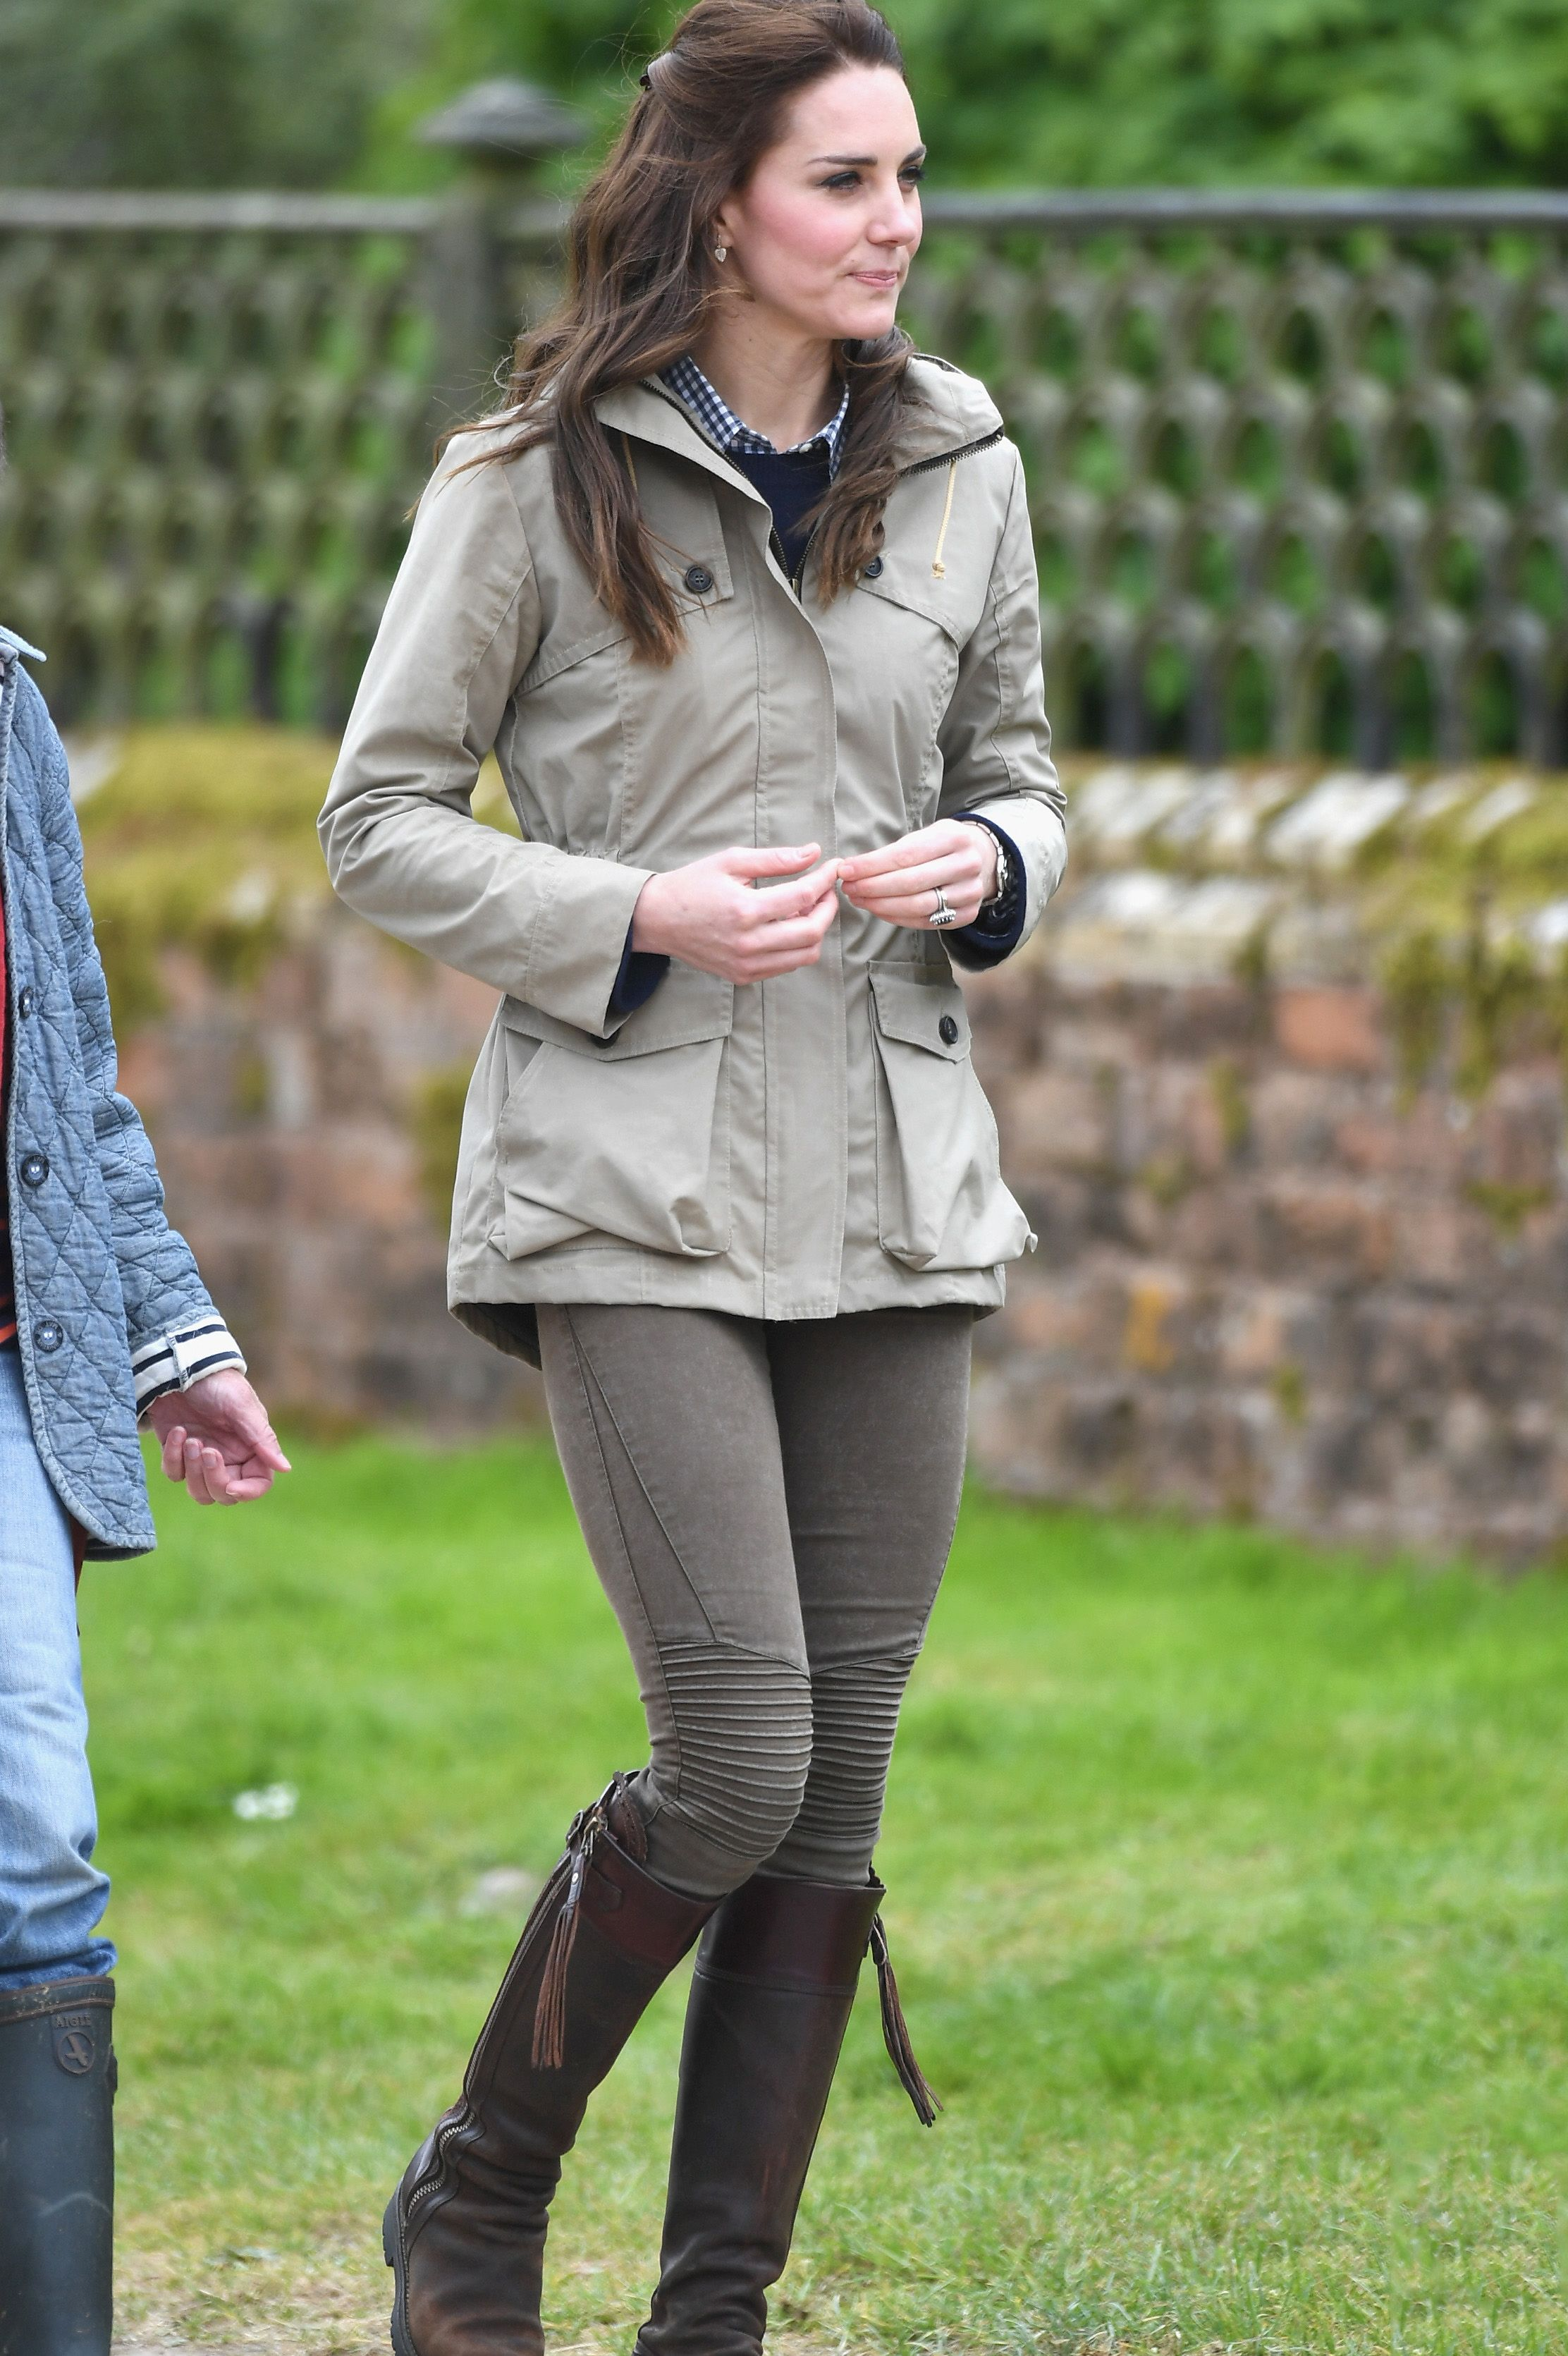 Kate's Casual Style